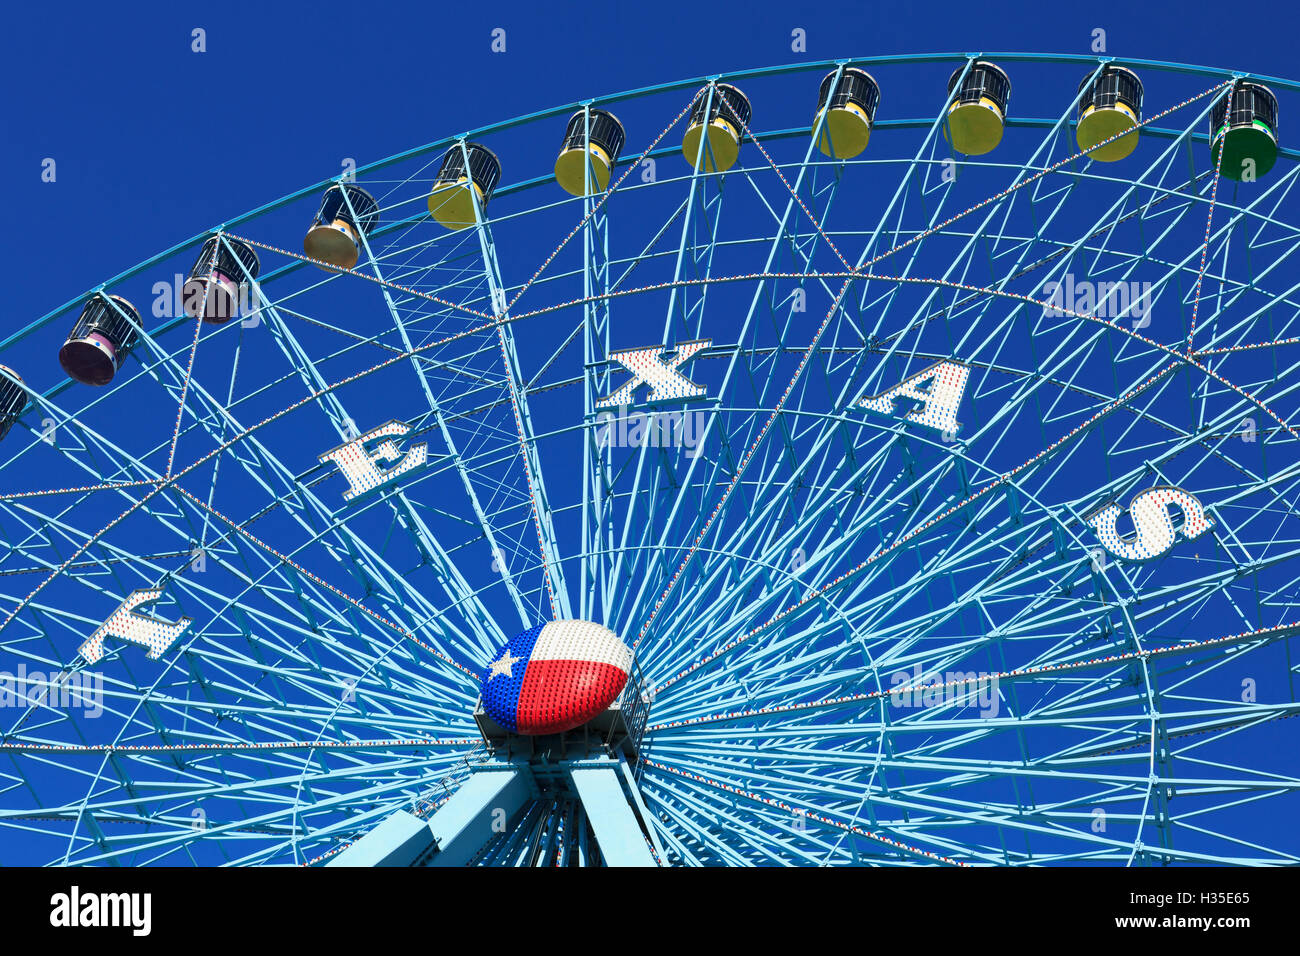 Ferris Wheel, Fair Park, Dallas, Texas, USA - Stock Image